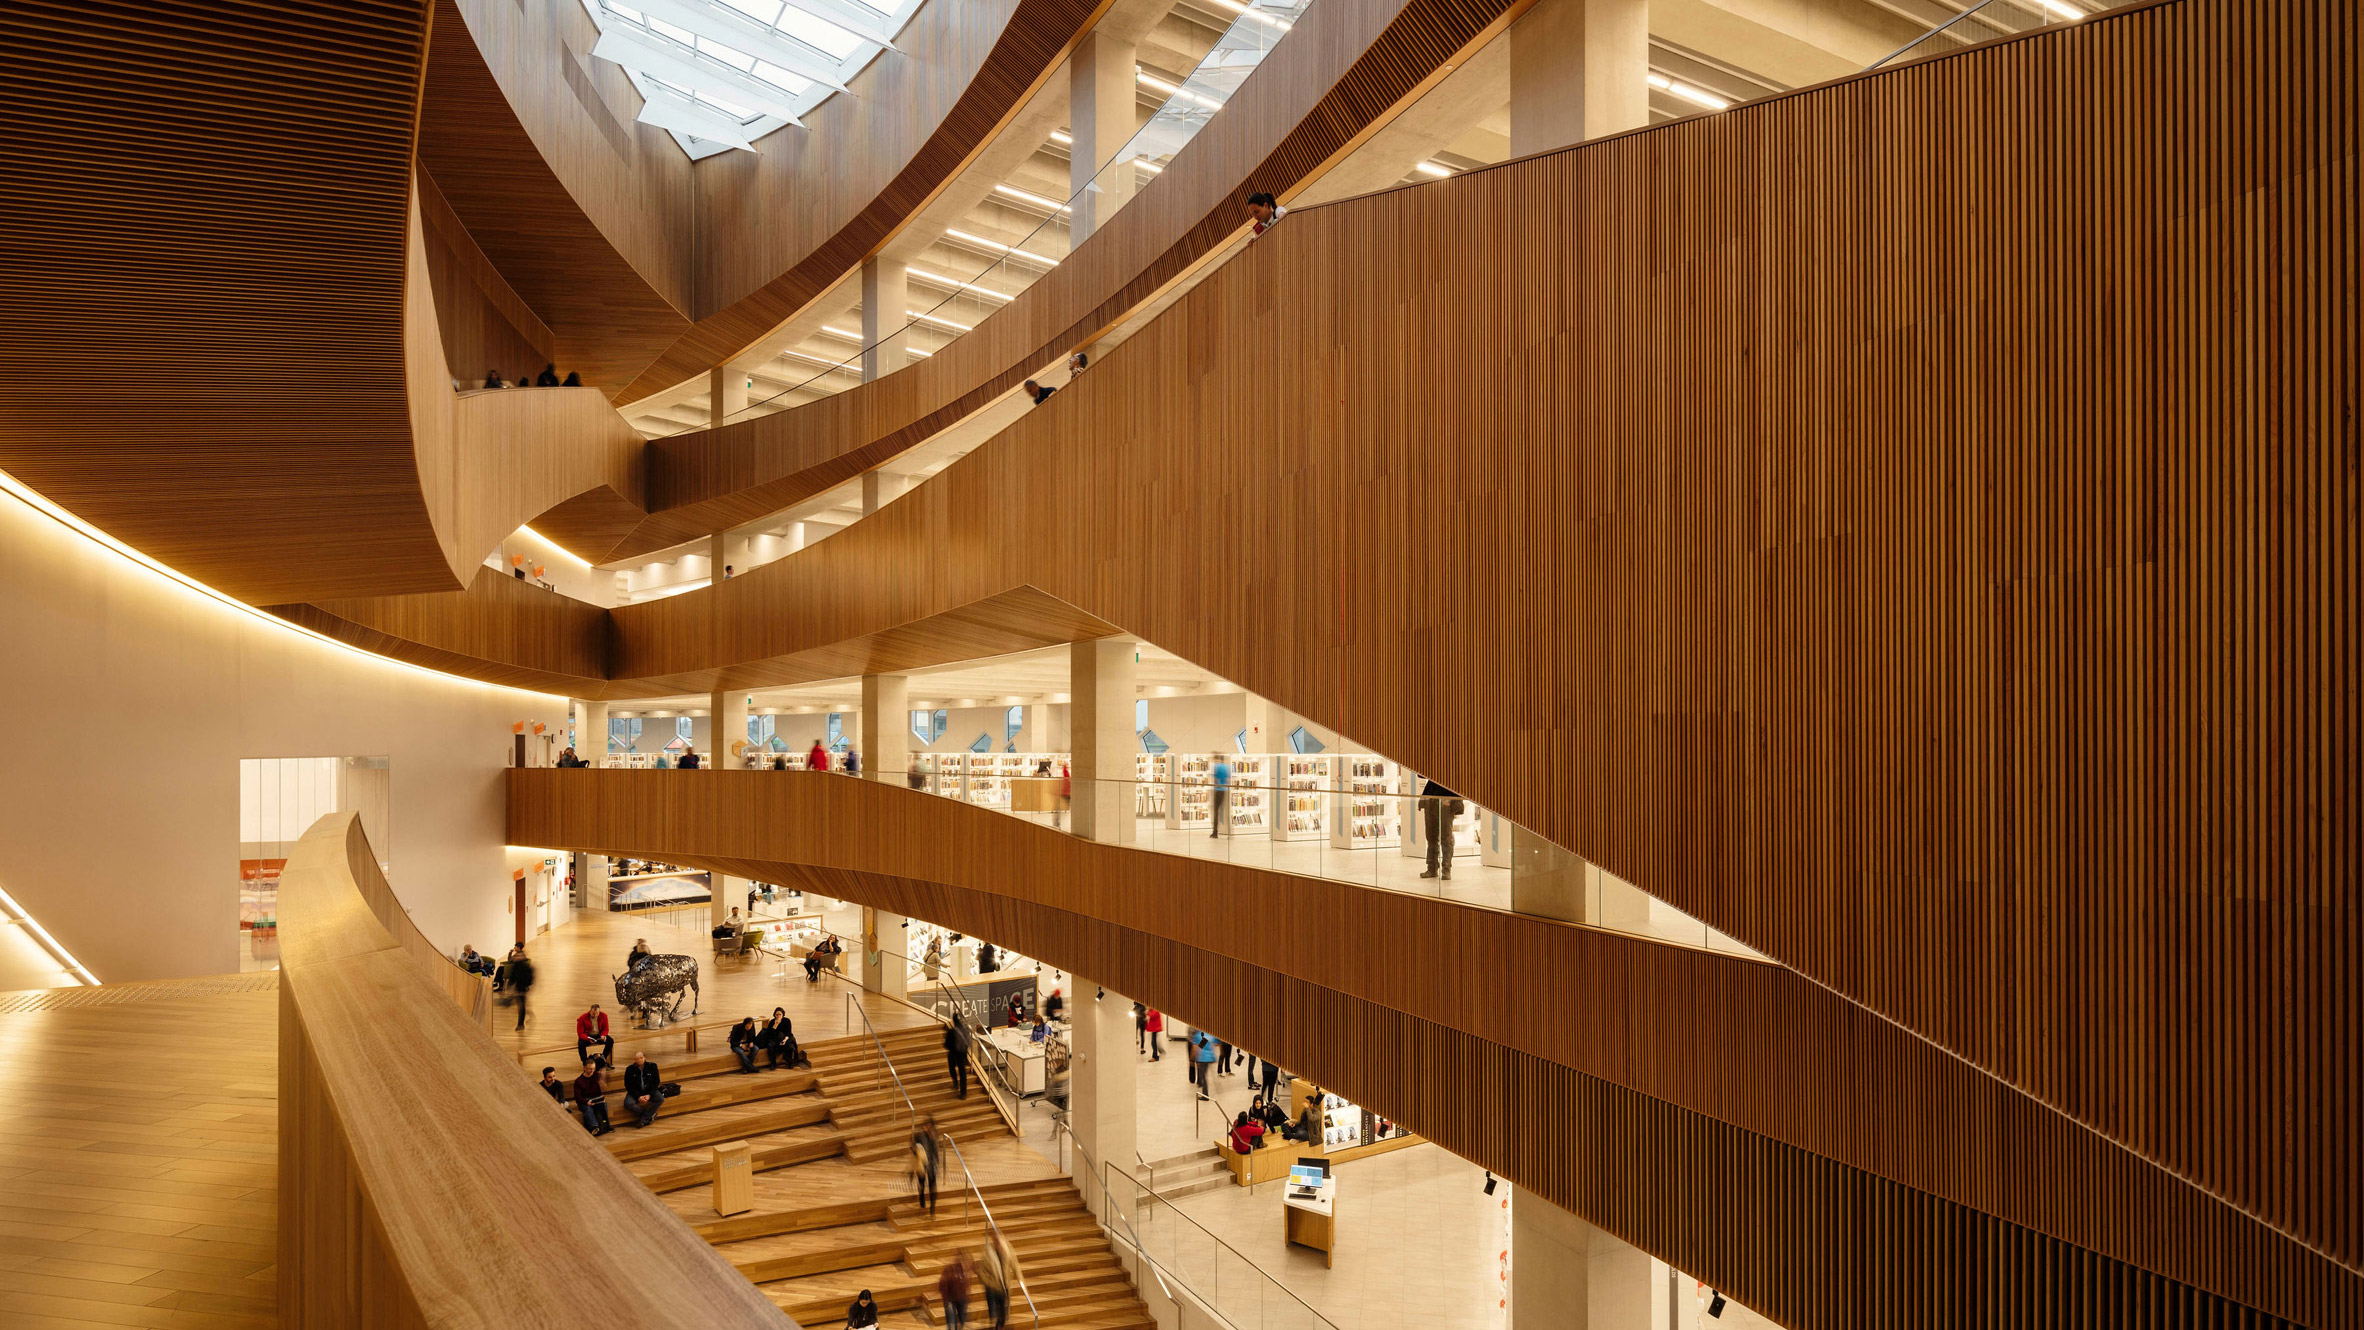 New Central Library, Canada, by Snøhetta and Dialog